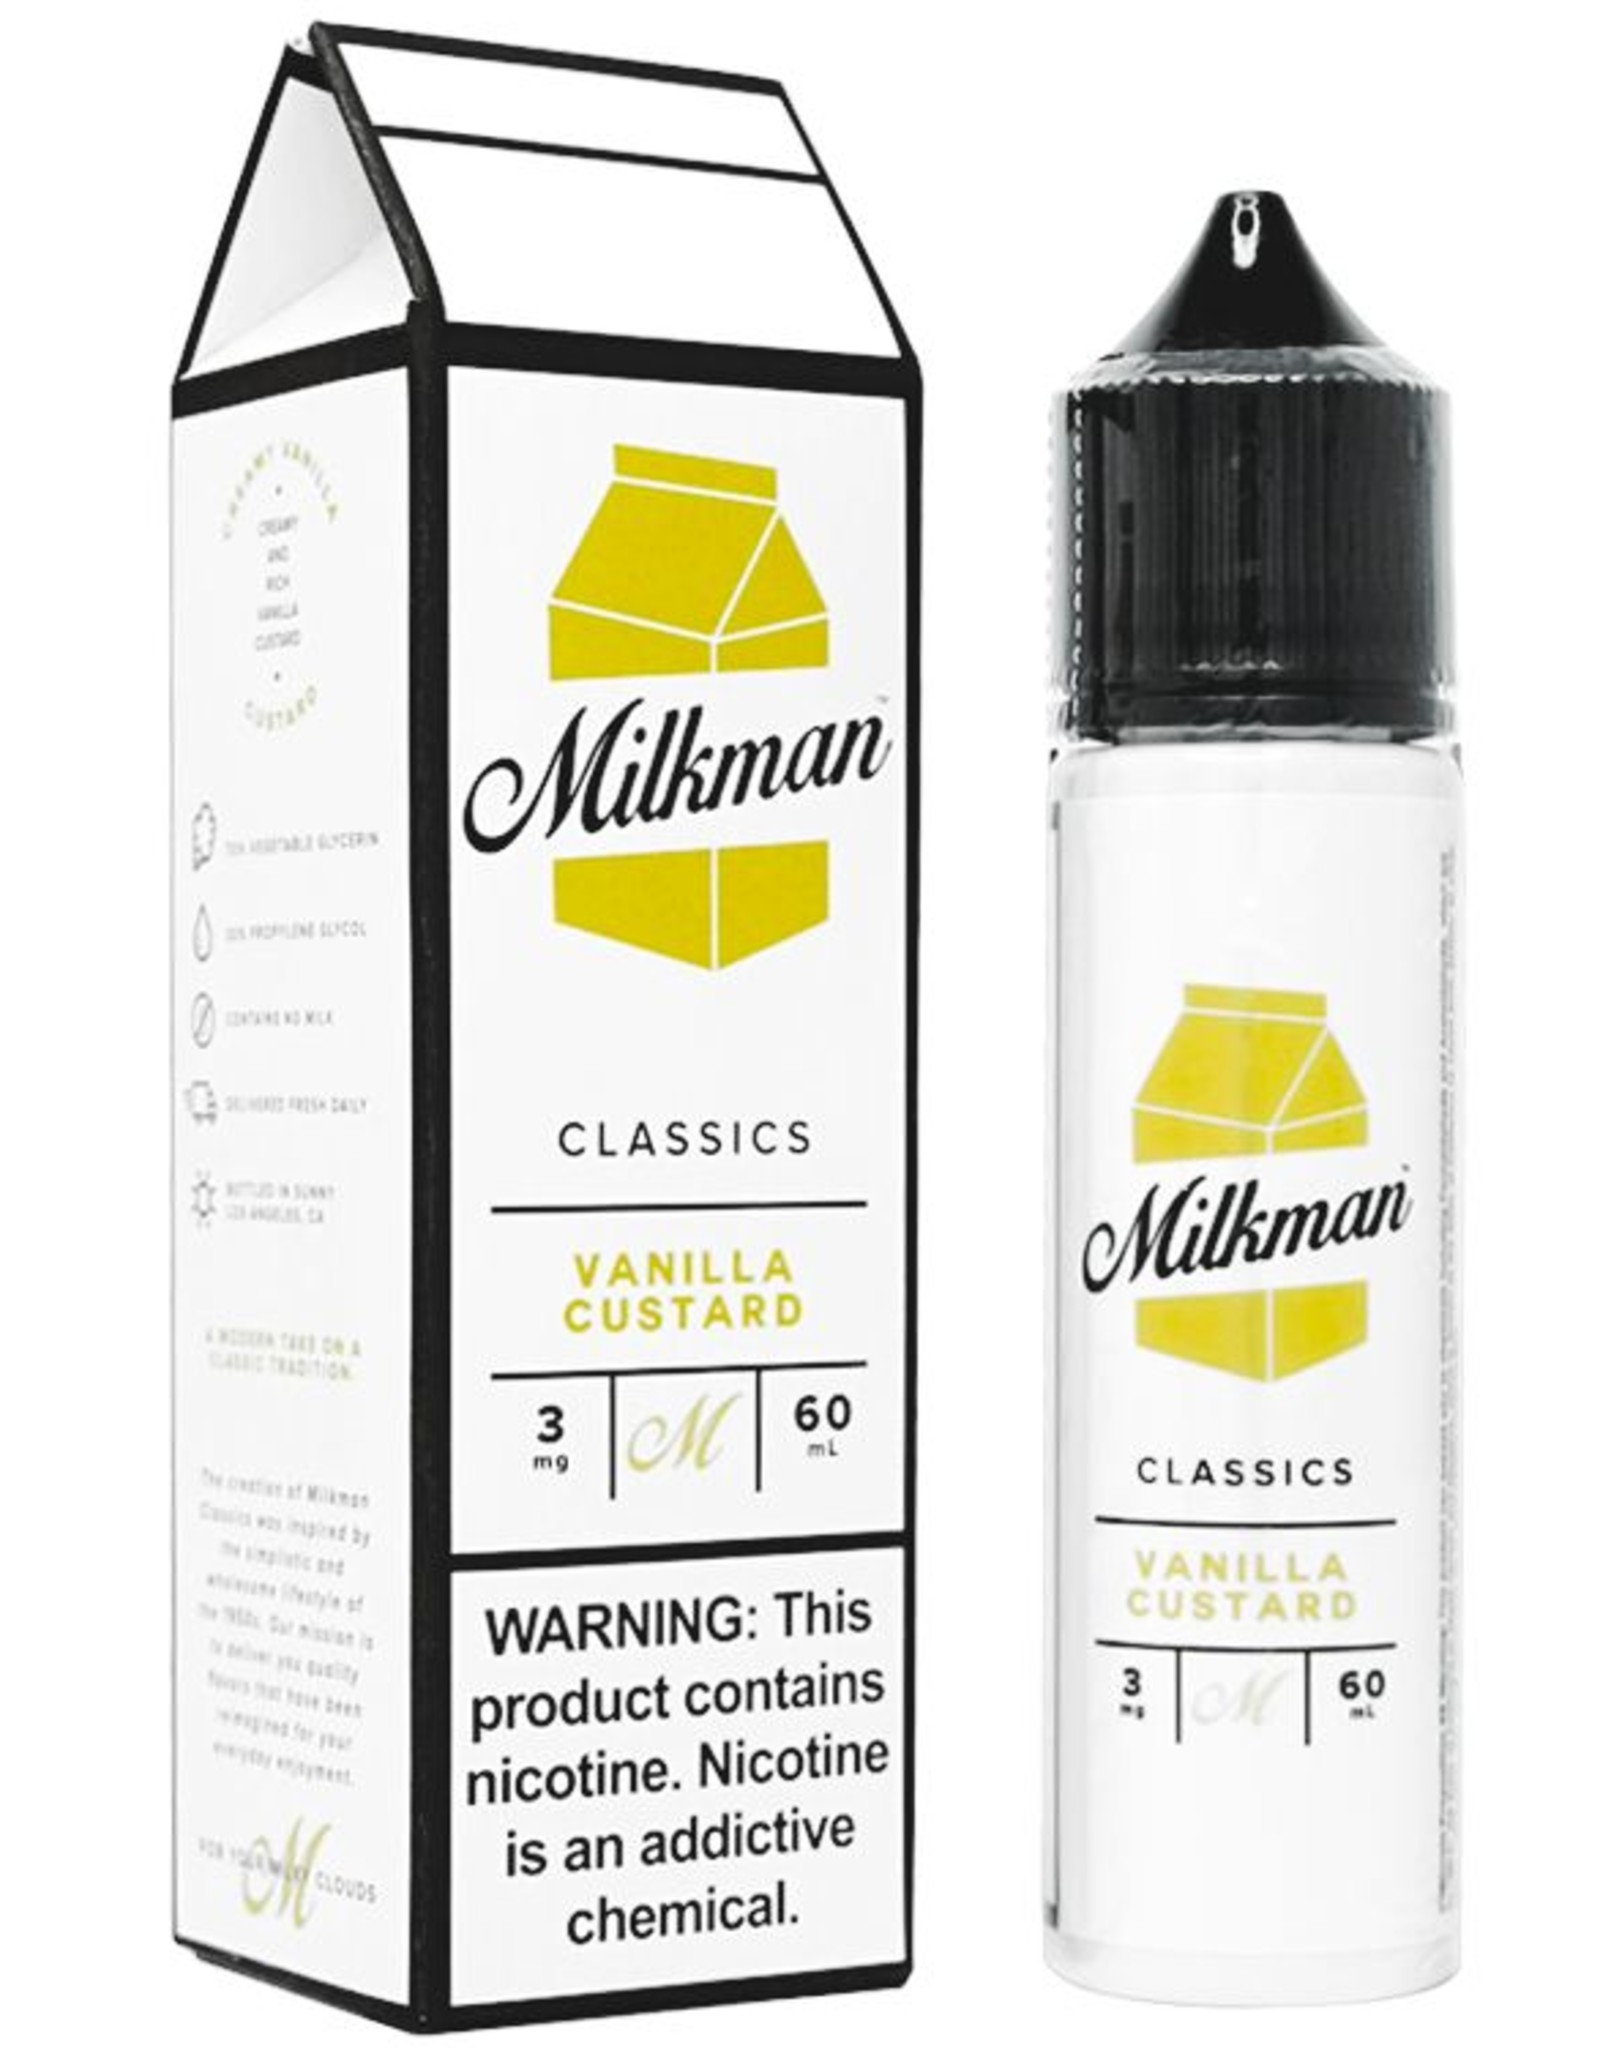 The Milkman The Milkman - Vanilla Whip (Vanilla Custard) (60mL)